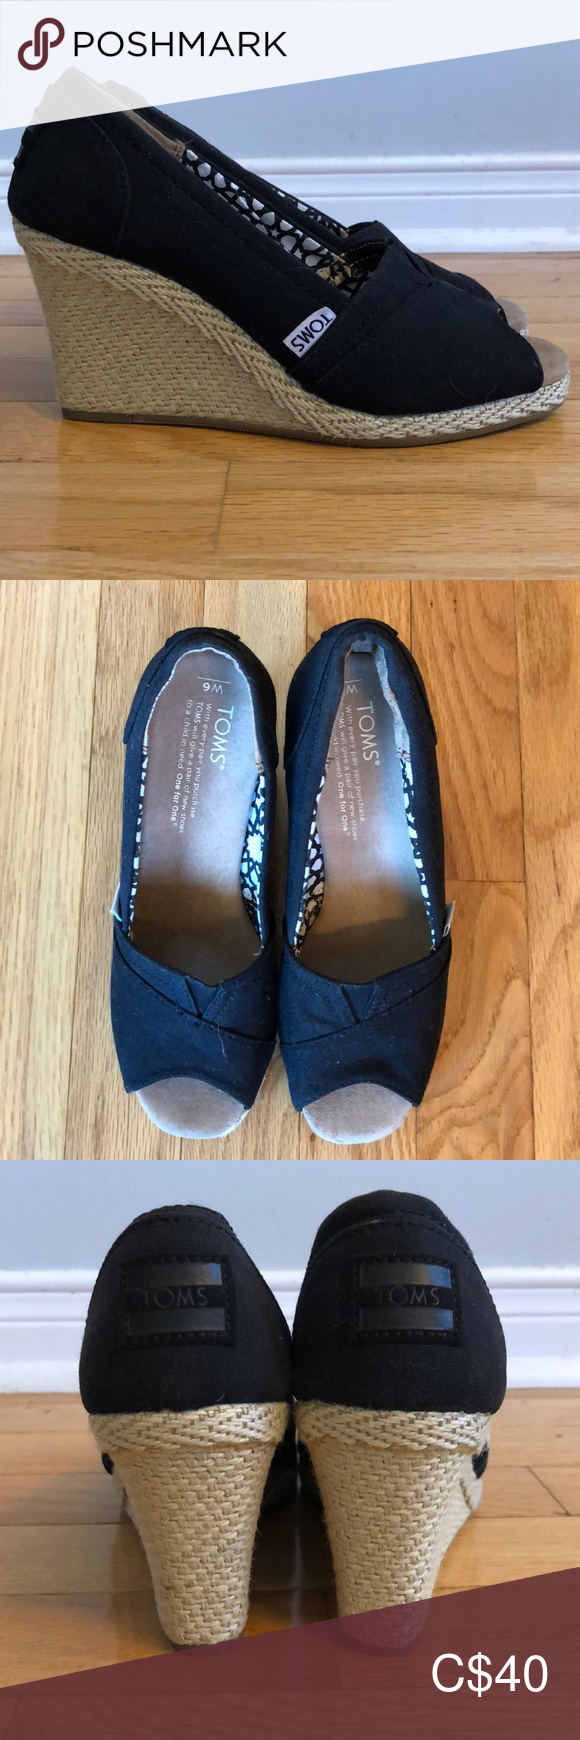 TOMS wedges NWT #tomwedges TOMS wedges Never worn, brand new. TOMS wedges. Toms Shoes Wedges #tomwedges